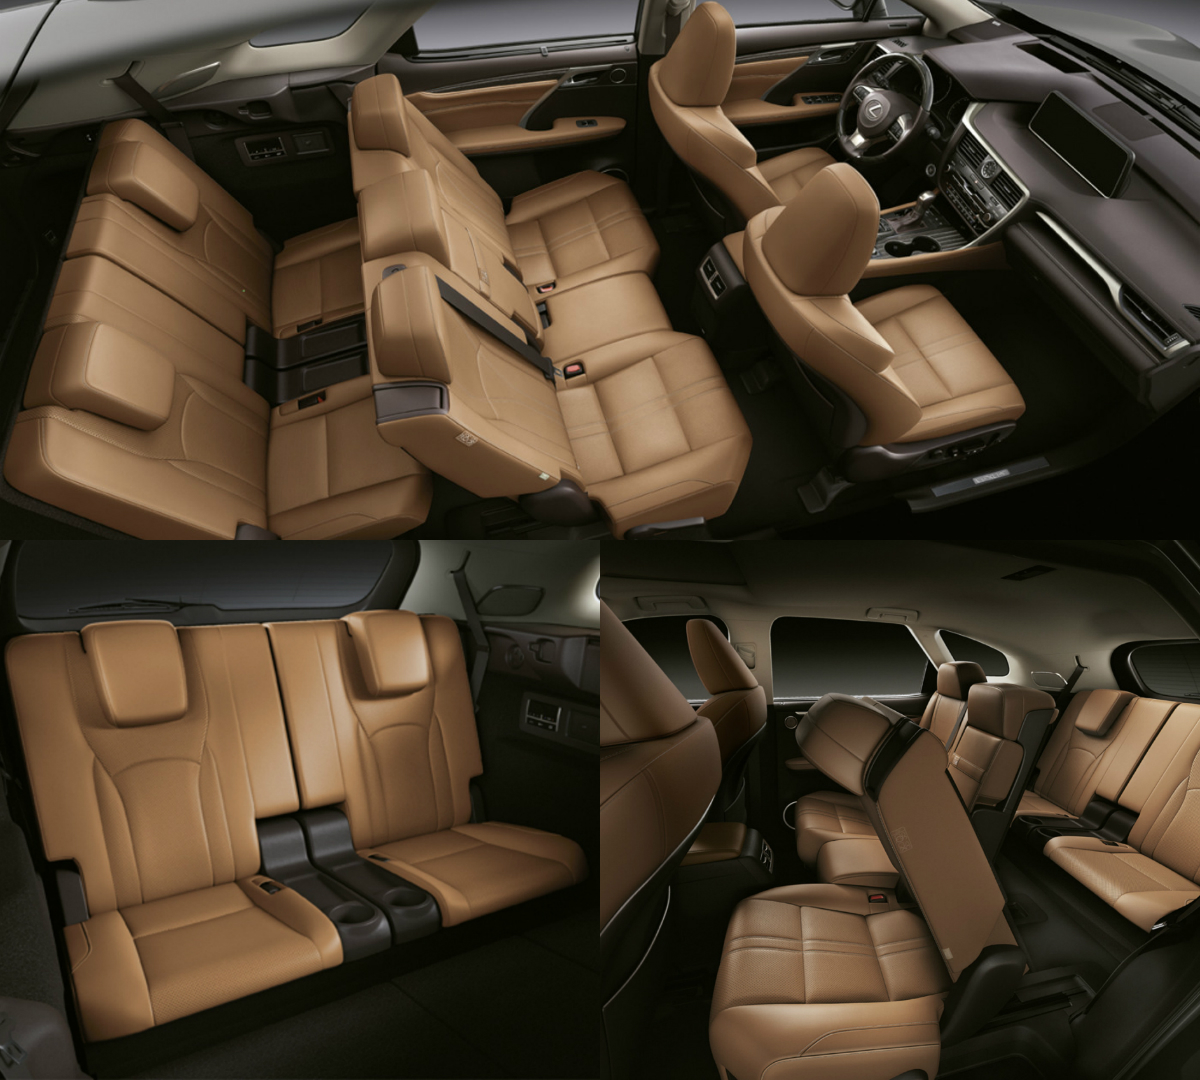 The new L version of the RX is a versatile seven-seater SUV with an interior that offers Lexus luxury, Japanese hospitality and great comfort for everybody on board.